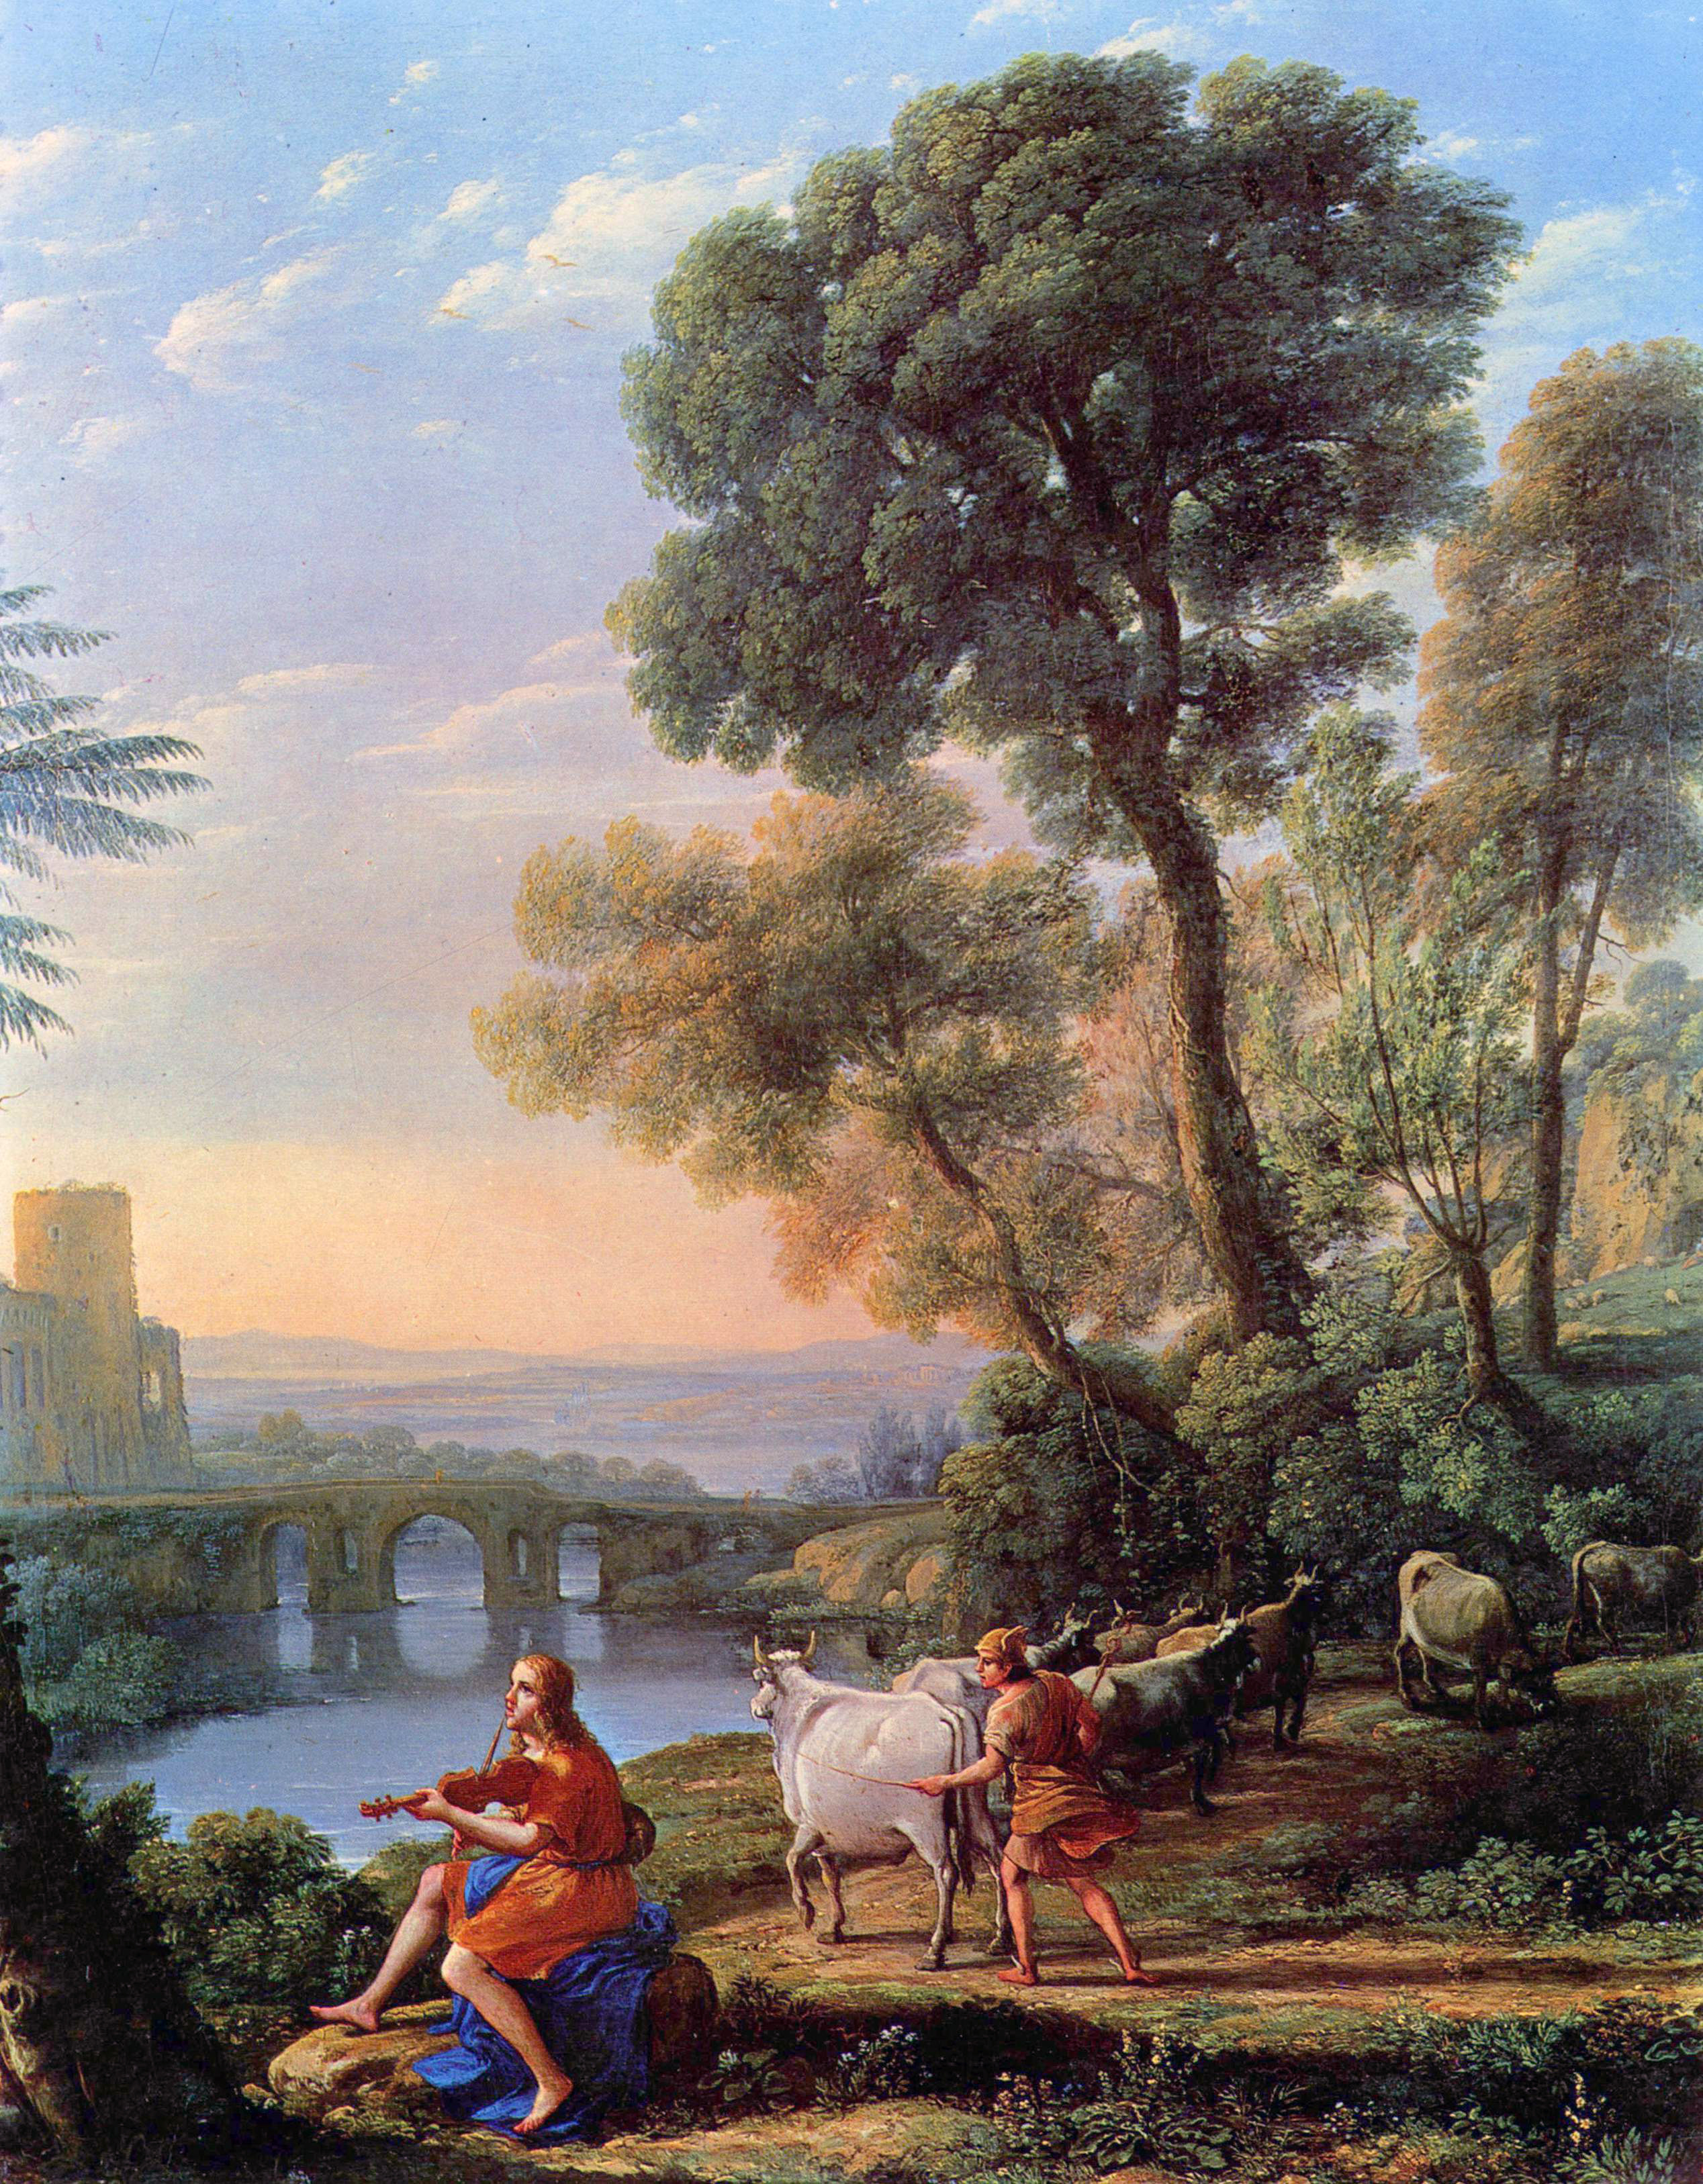 Landscape with Apollo Guarding the Herds of Admetus and Mercury stealing them by Claude Lorrain, oil on canvas, 1645. Currently in the collections of the Doria Pamphilj Gallery, housed in the Palazzo Doria Pamphilj in Rome, Italy.